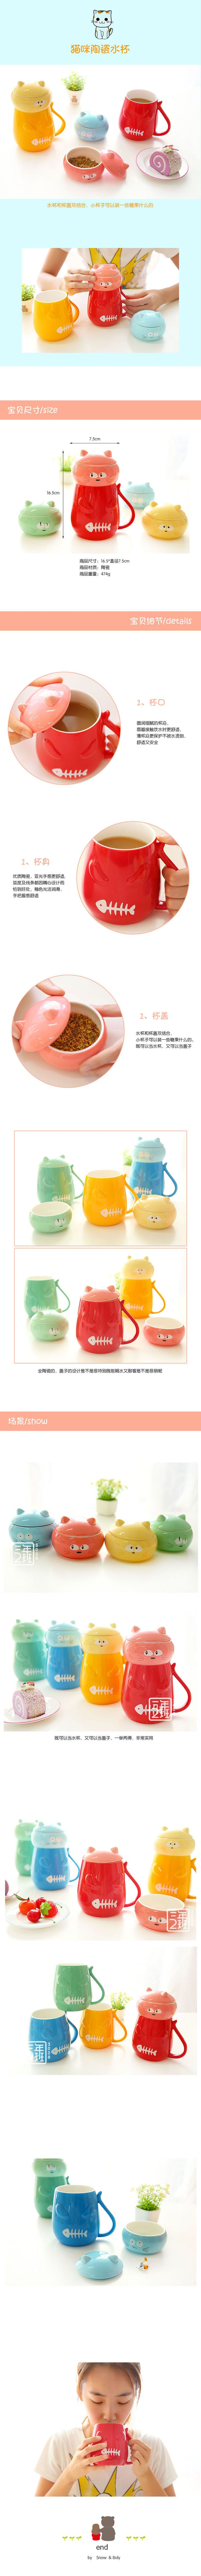 Creative Cute Mug Cat Ceramic Cup With Lid Funny Coffee Mugs Chinese Ceramic Tea Cups-in Mugs from Home & Garden on Aliexpress.com | Alibaba Group